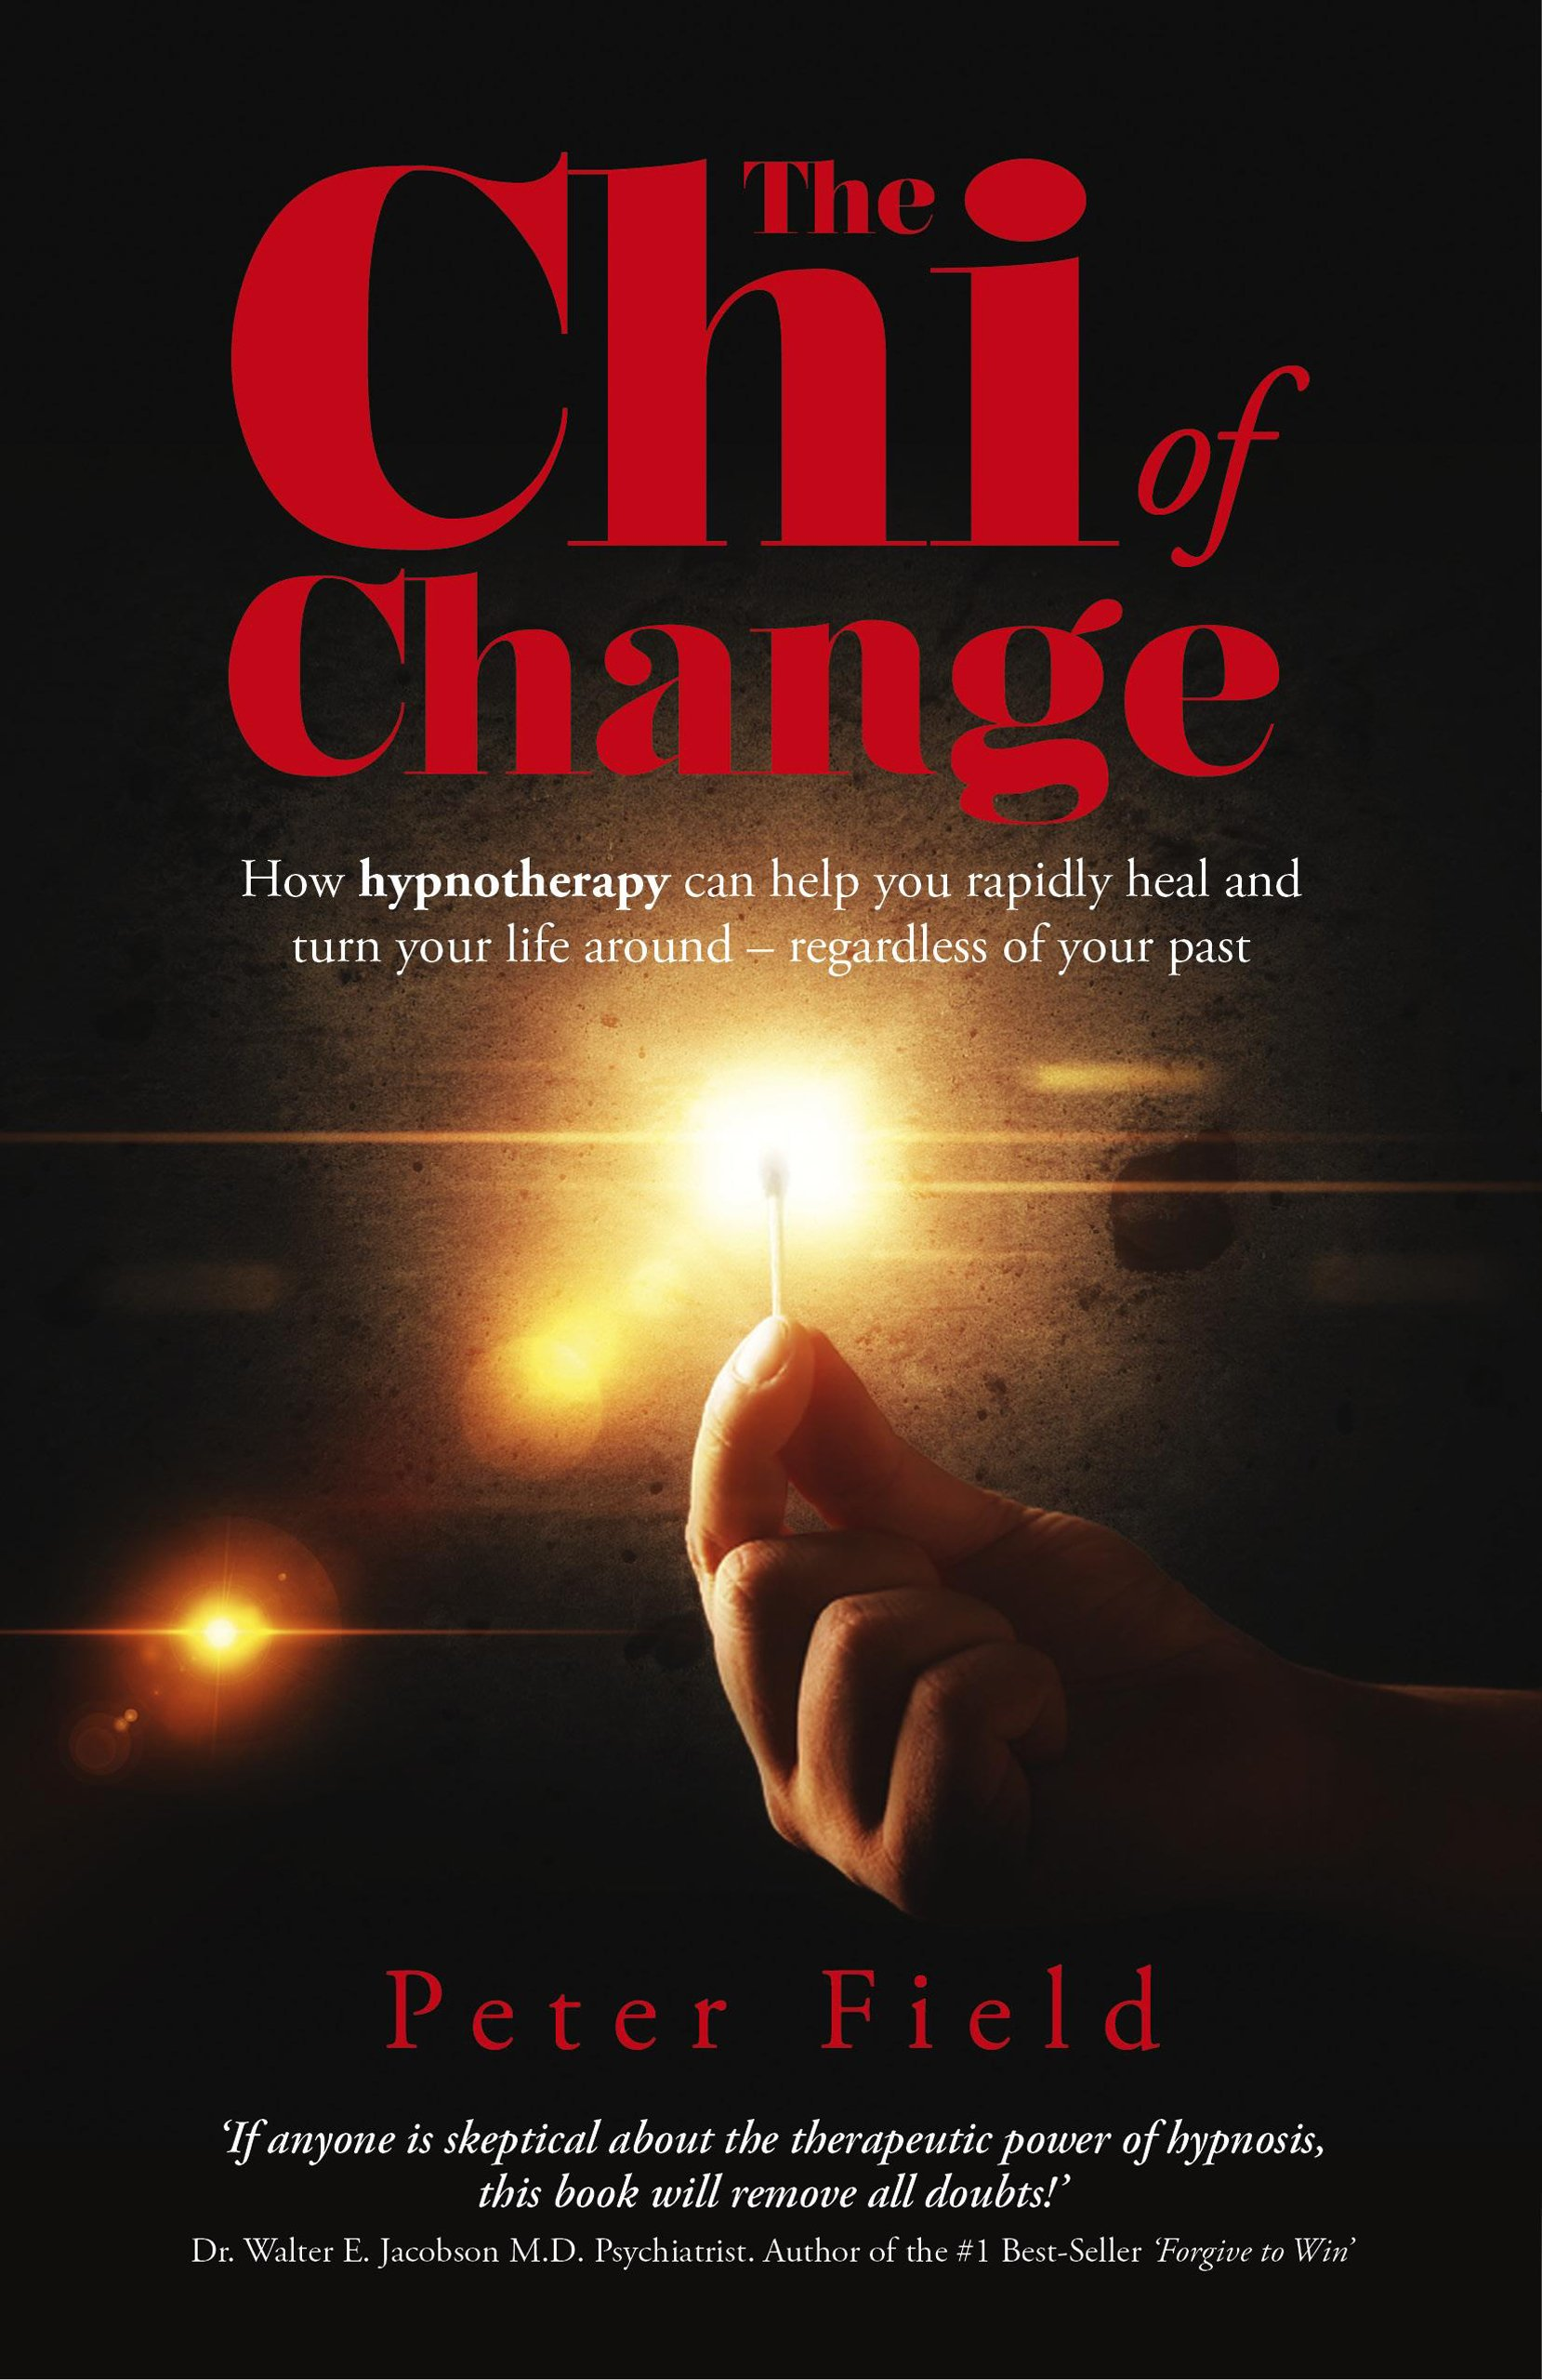 The Chi of Change: How hypnotherapy can help you heal and turn your life around - regardless of your past ebook